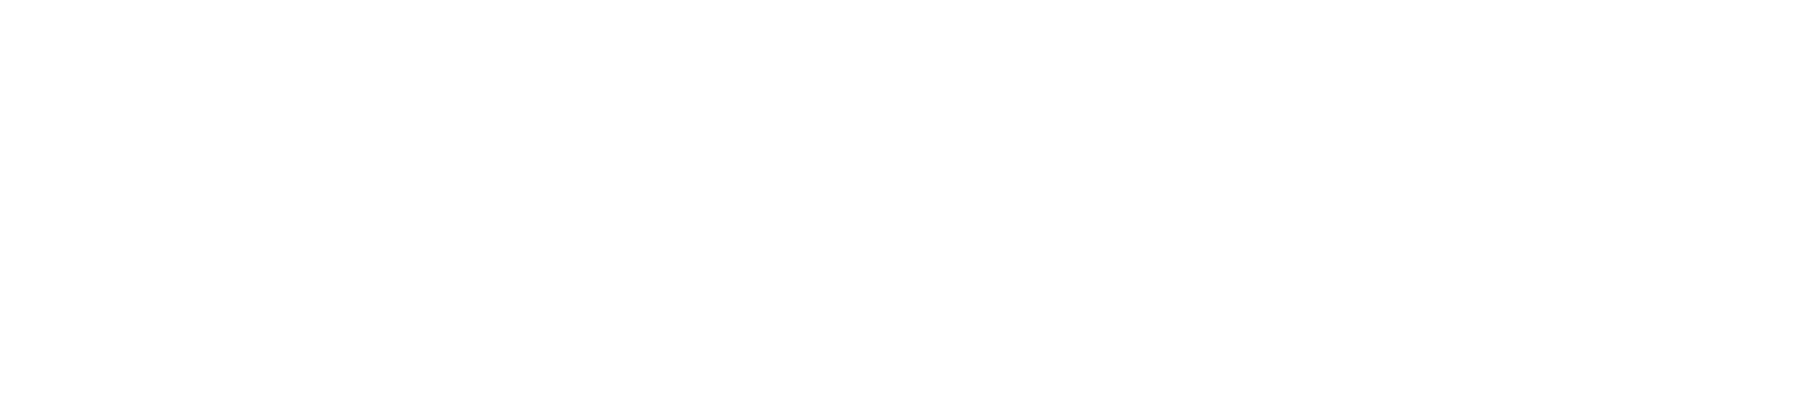 Kohl's Cares and Alliance for a Healthier Generation